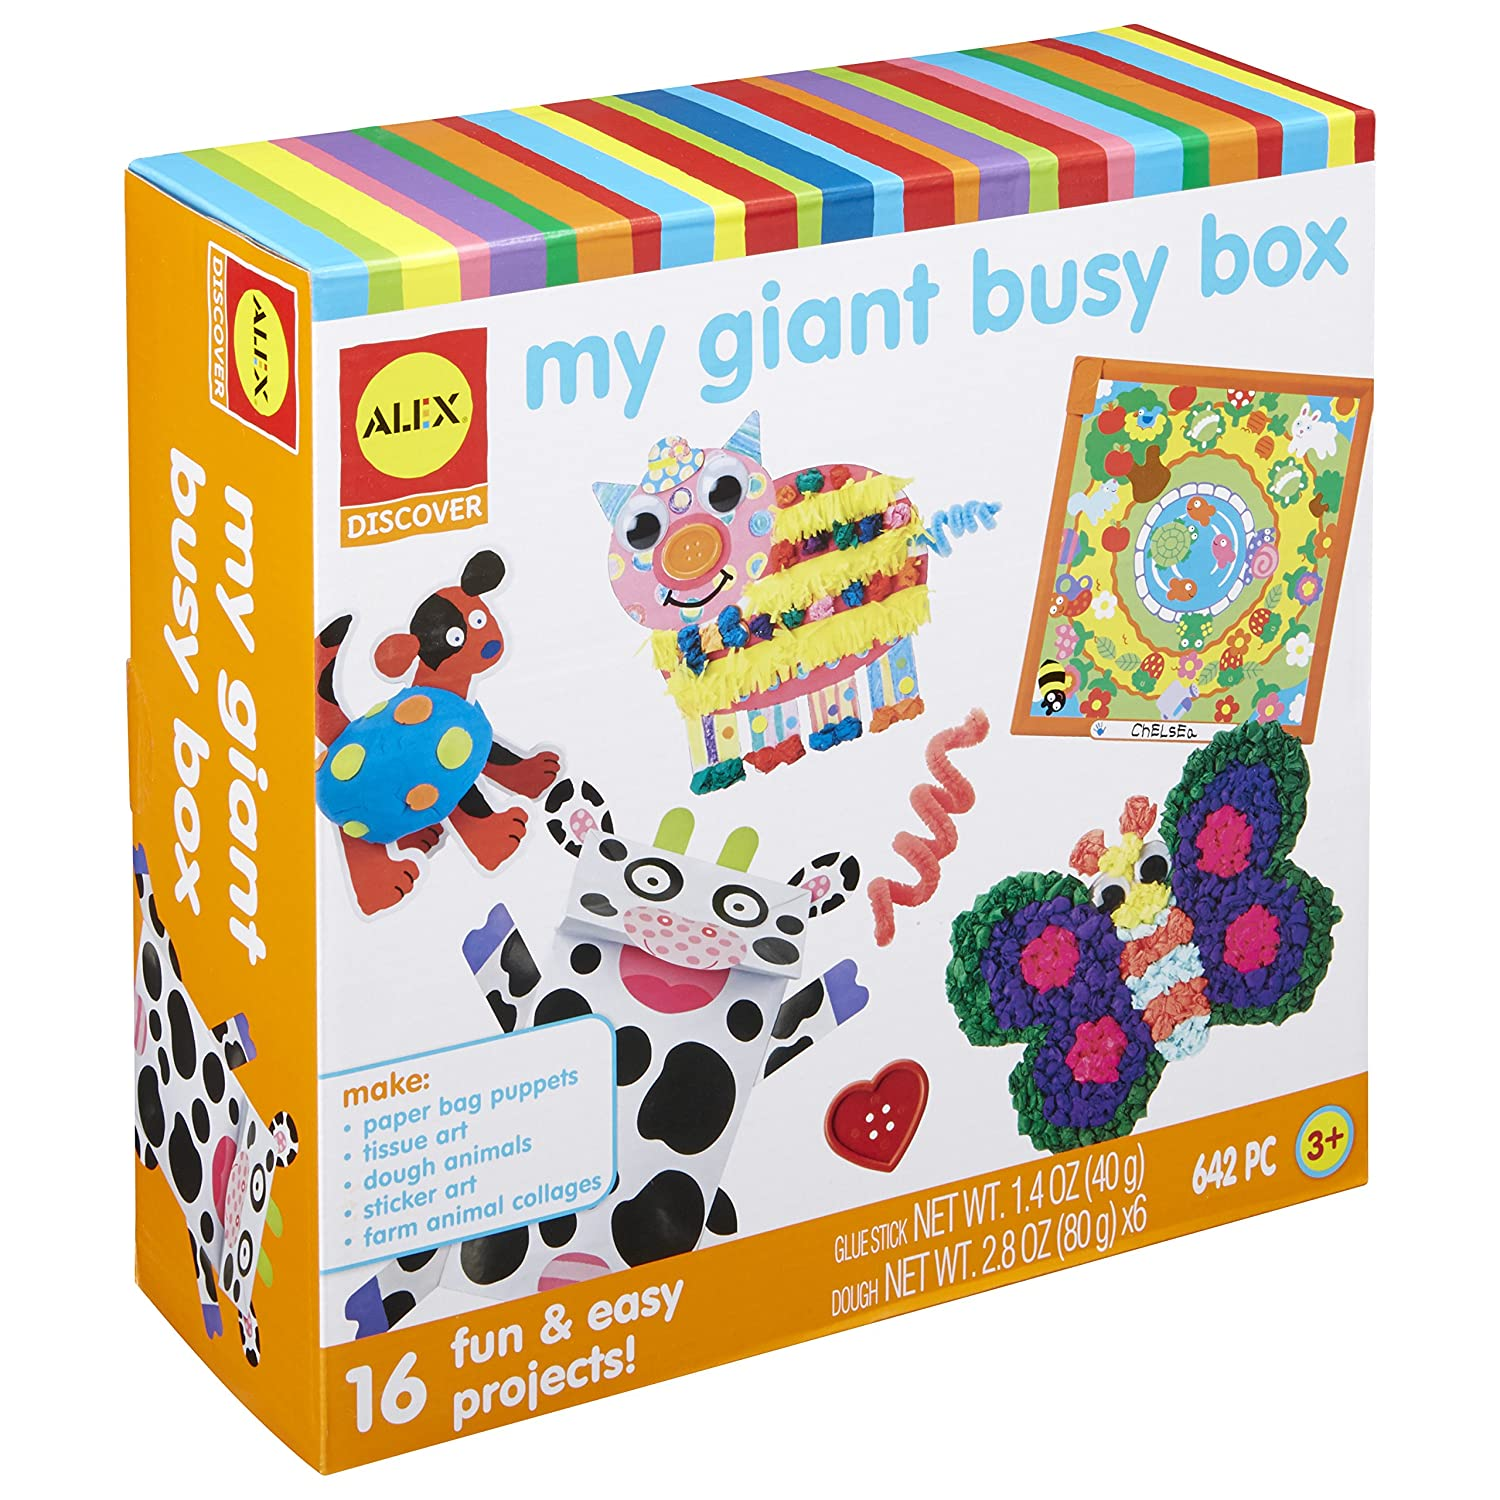 Amazon com alex discover my giant busy box craft kit toys games